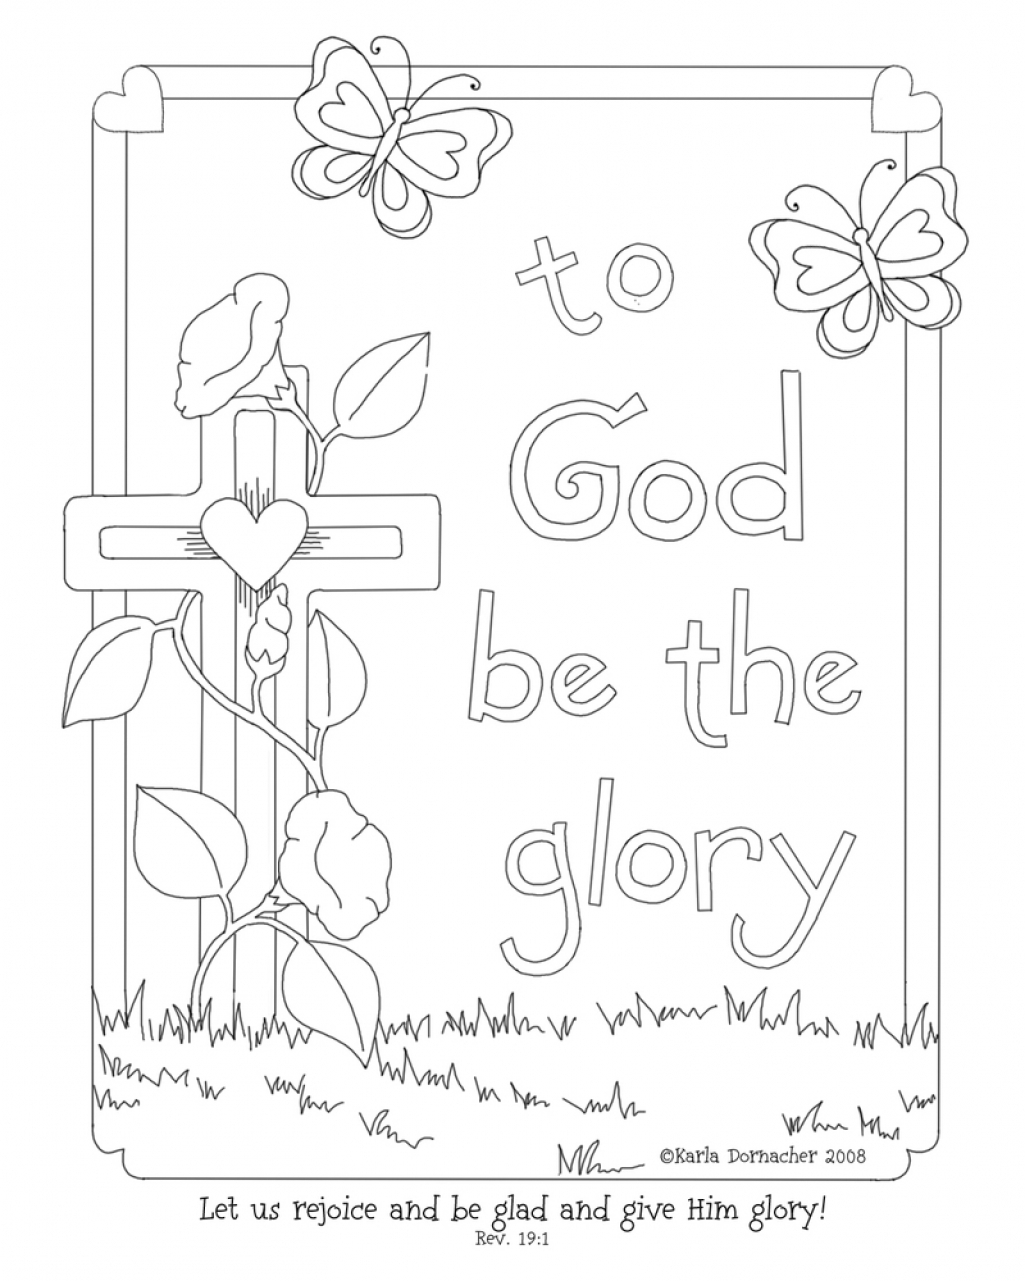 Fascinating Coloring Pages Sunday School at Menmadehome Image for to Print Of Prayer Trust In the Lord Collection